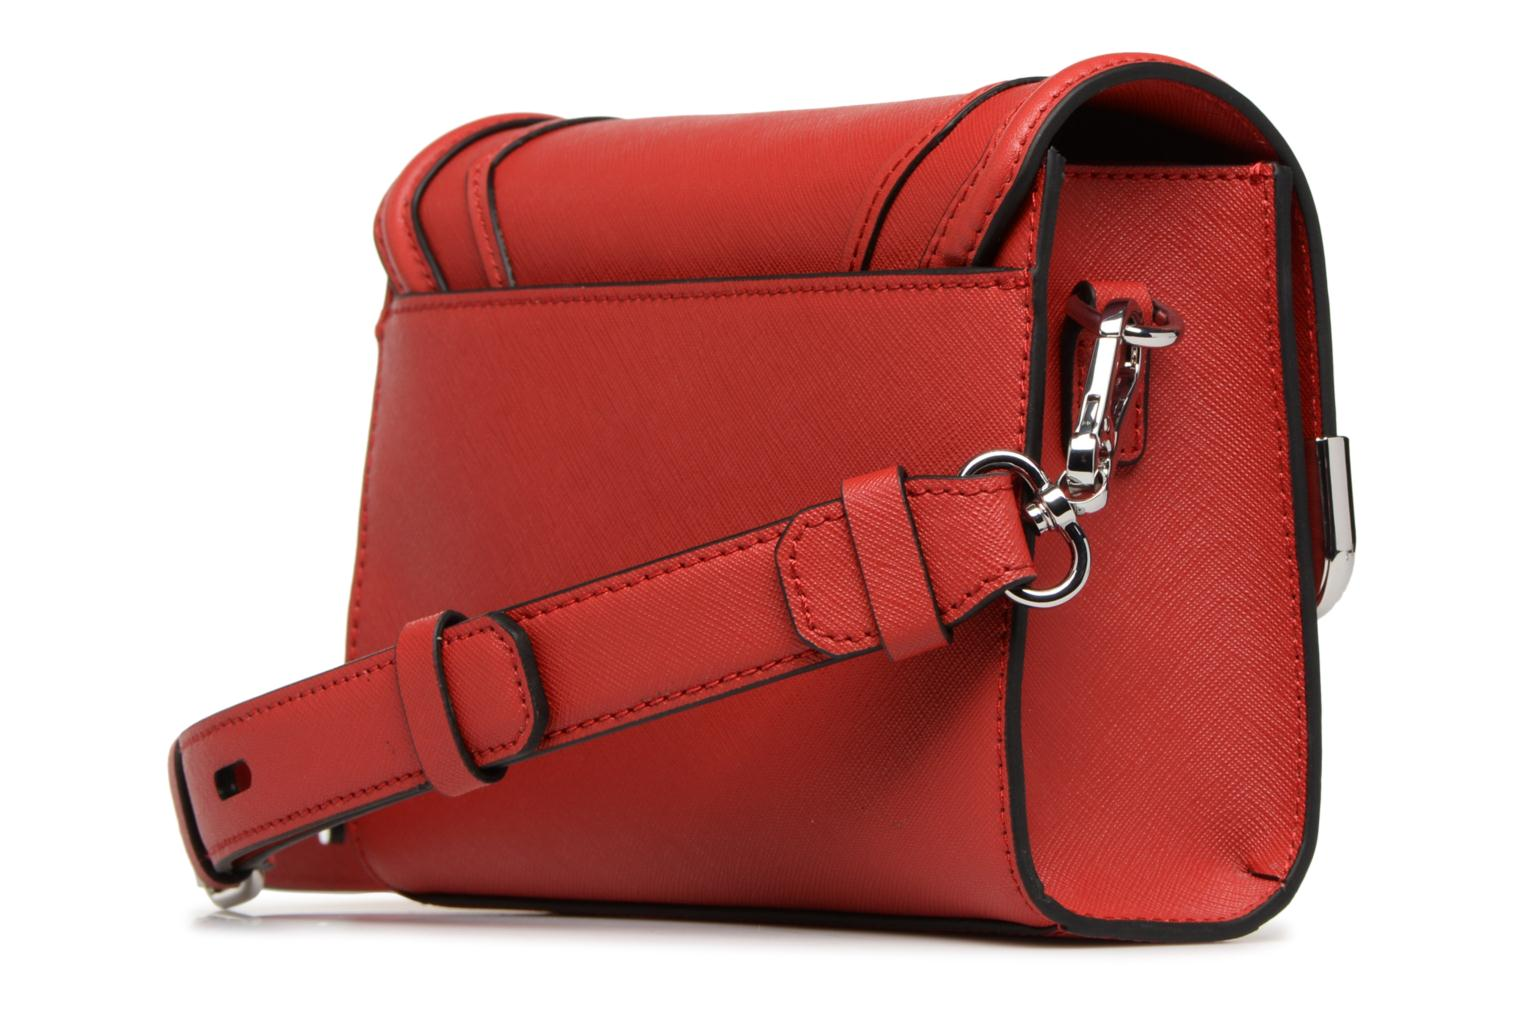 SAFFIANO Red LAGERFELD SMALL SHOULDERBAG ROCKY KARL K YBat7qxwYS